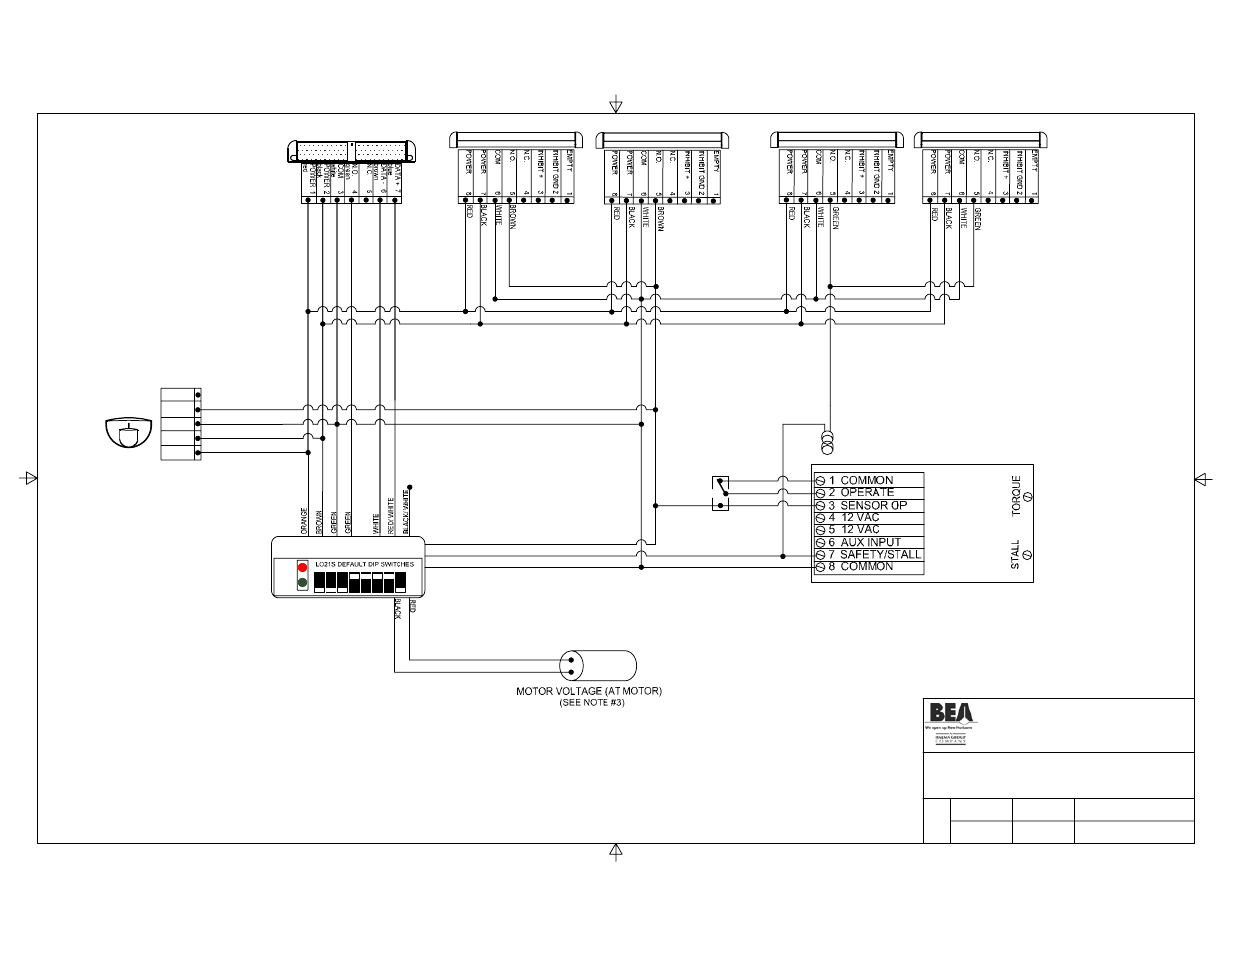 hight resolution of title eagle bodyguard bea stanley dip switch i user manual page 3 20